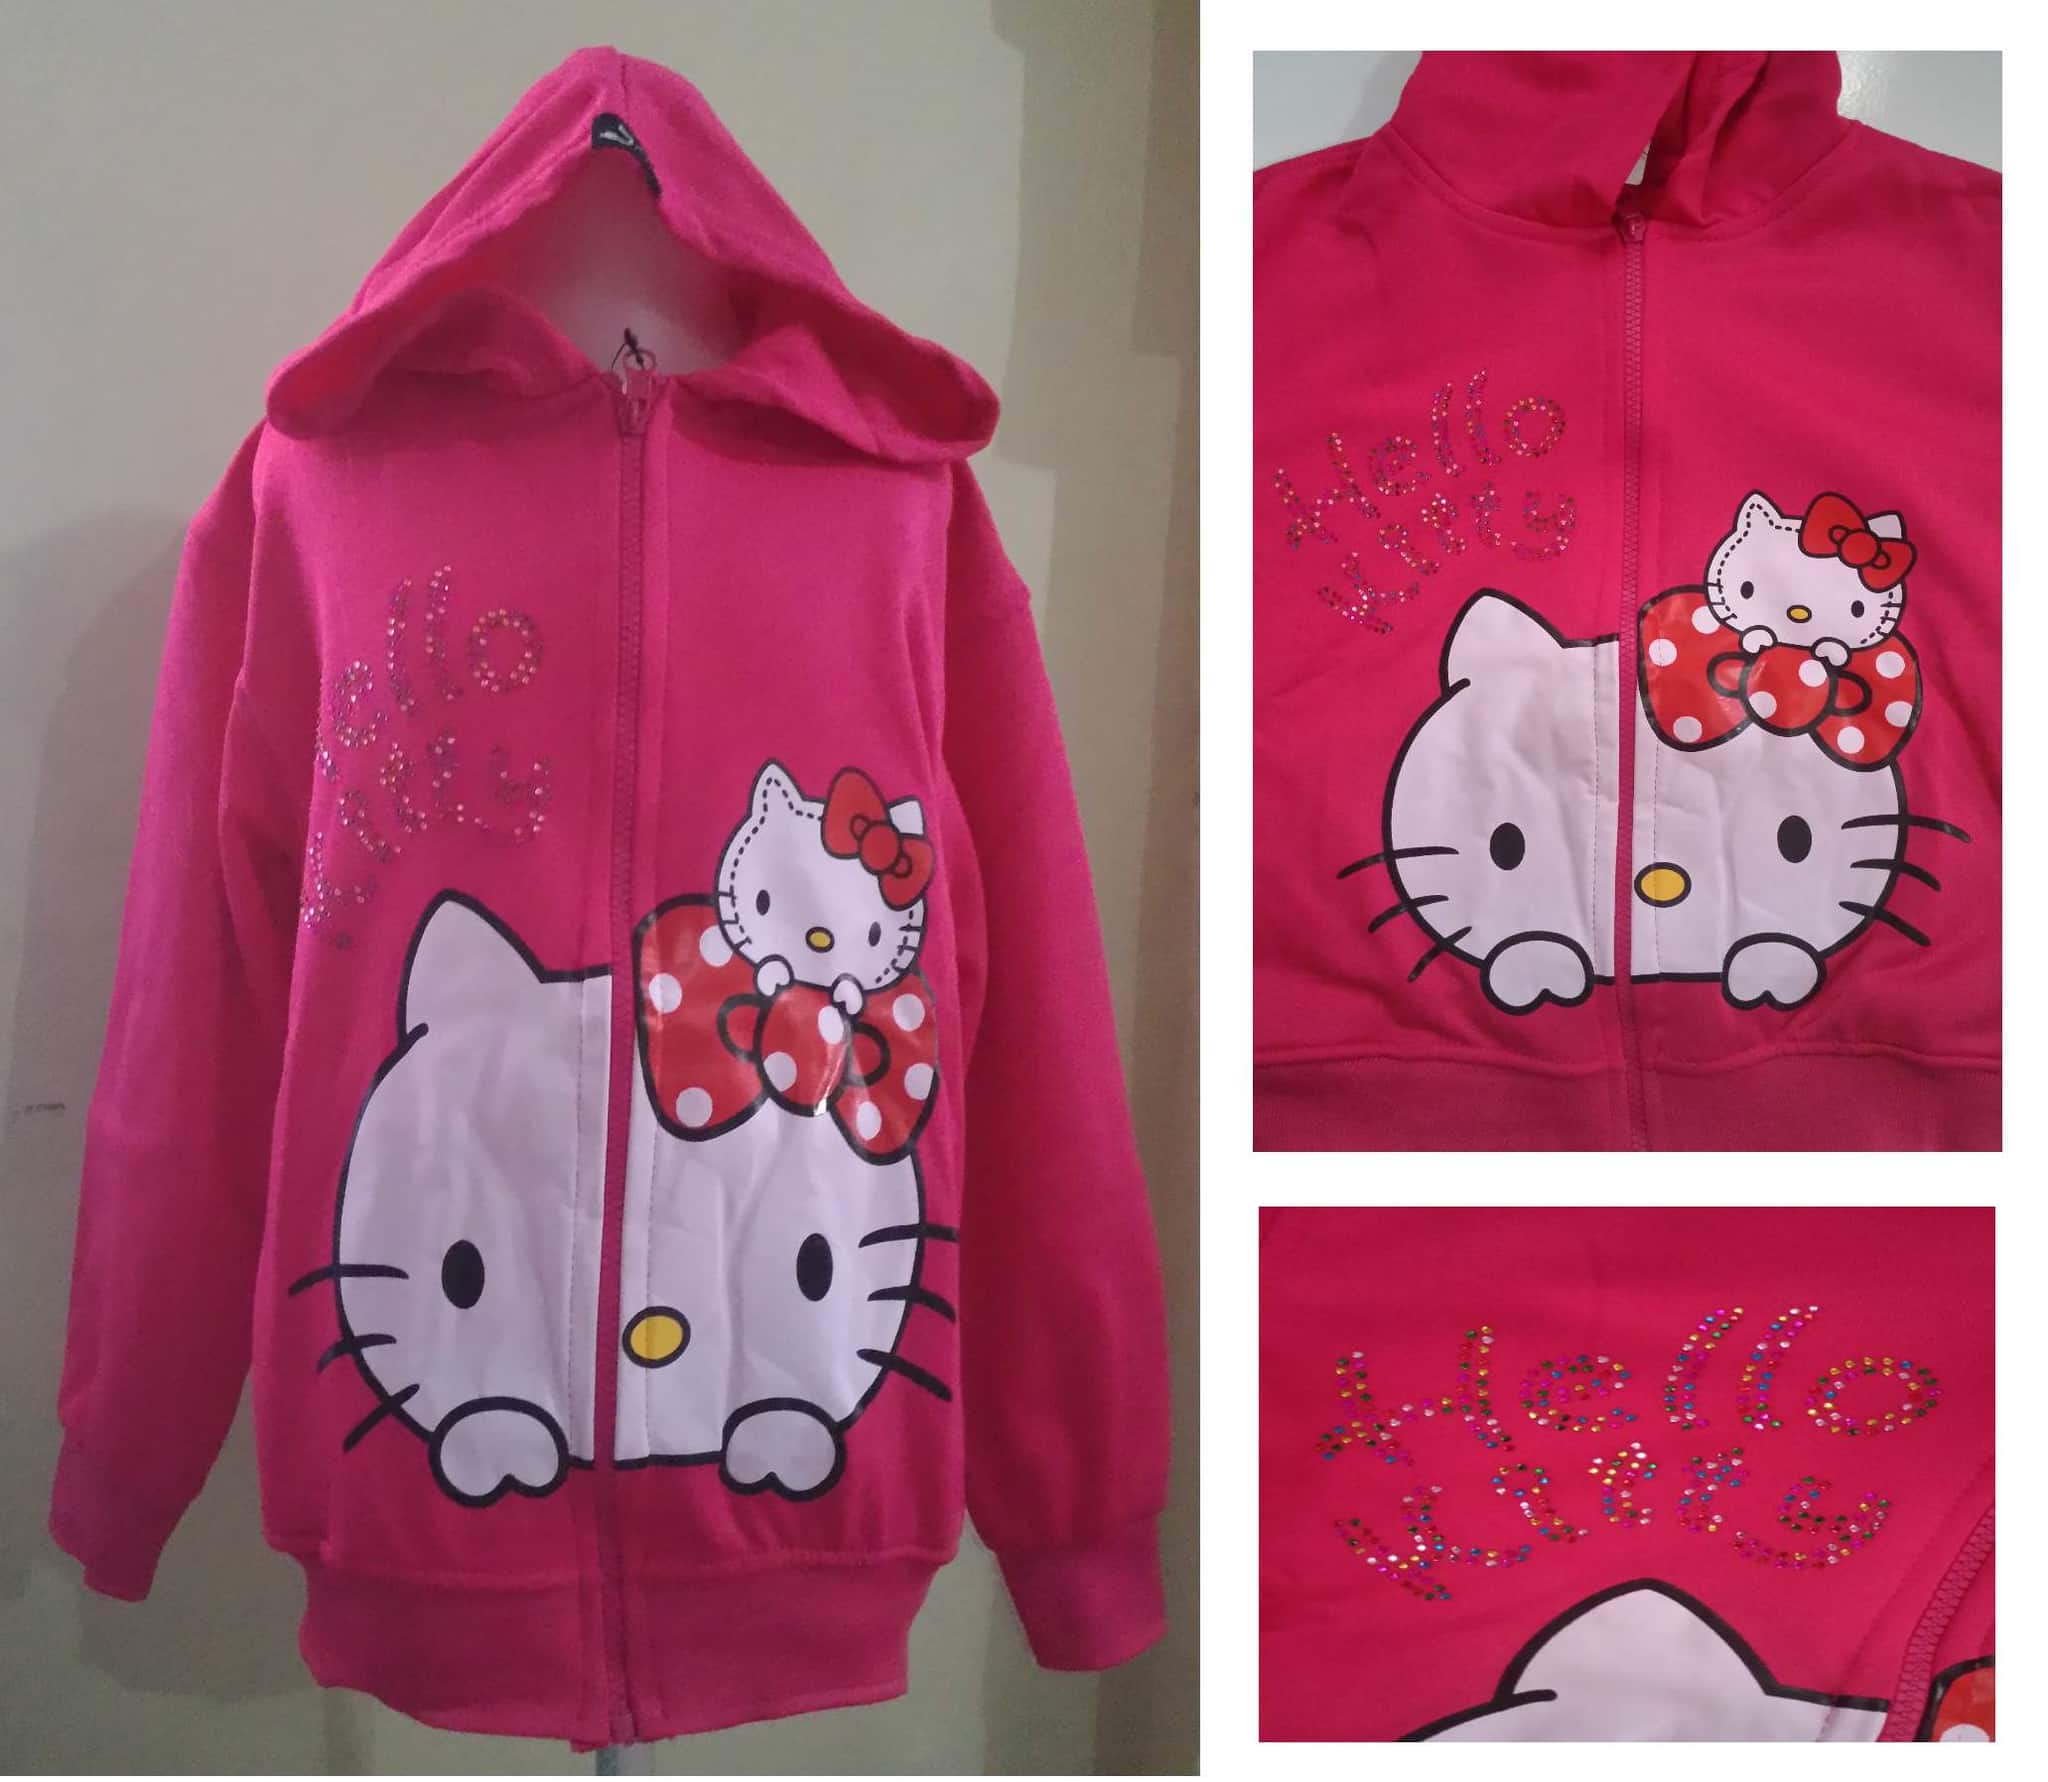 JKKD86 - Jaket Anak Hello Kitty Motek Pinkfanta